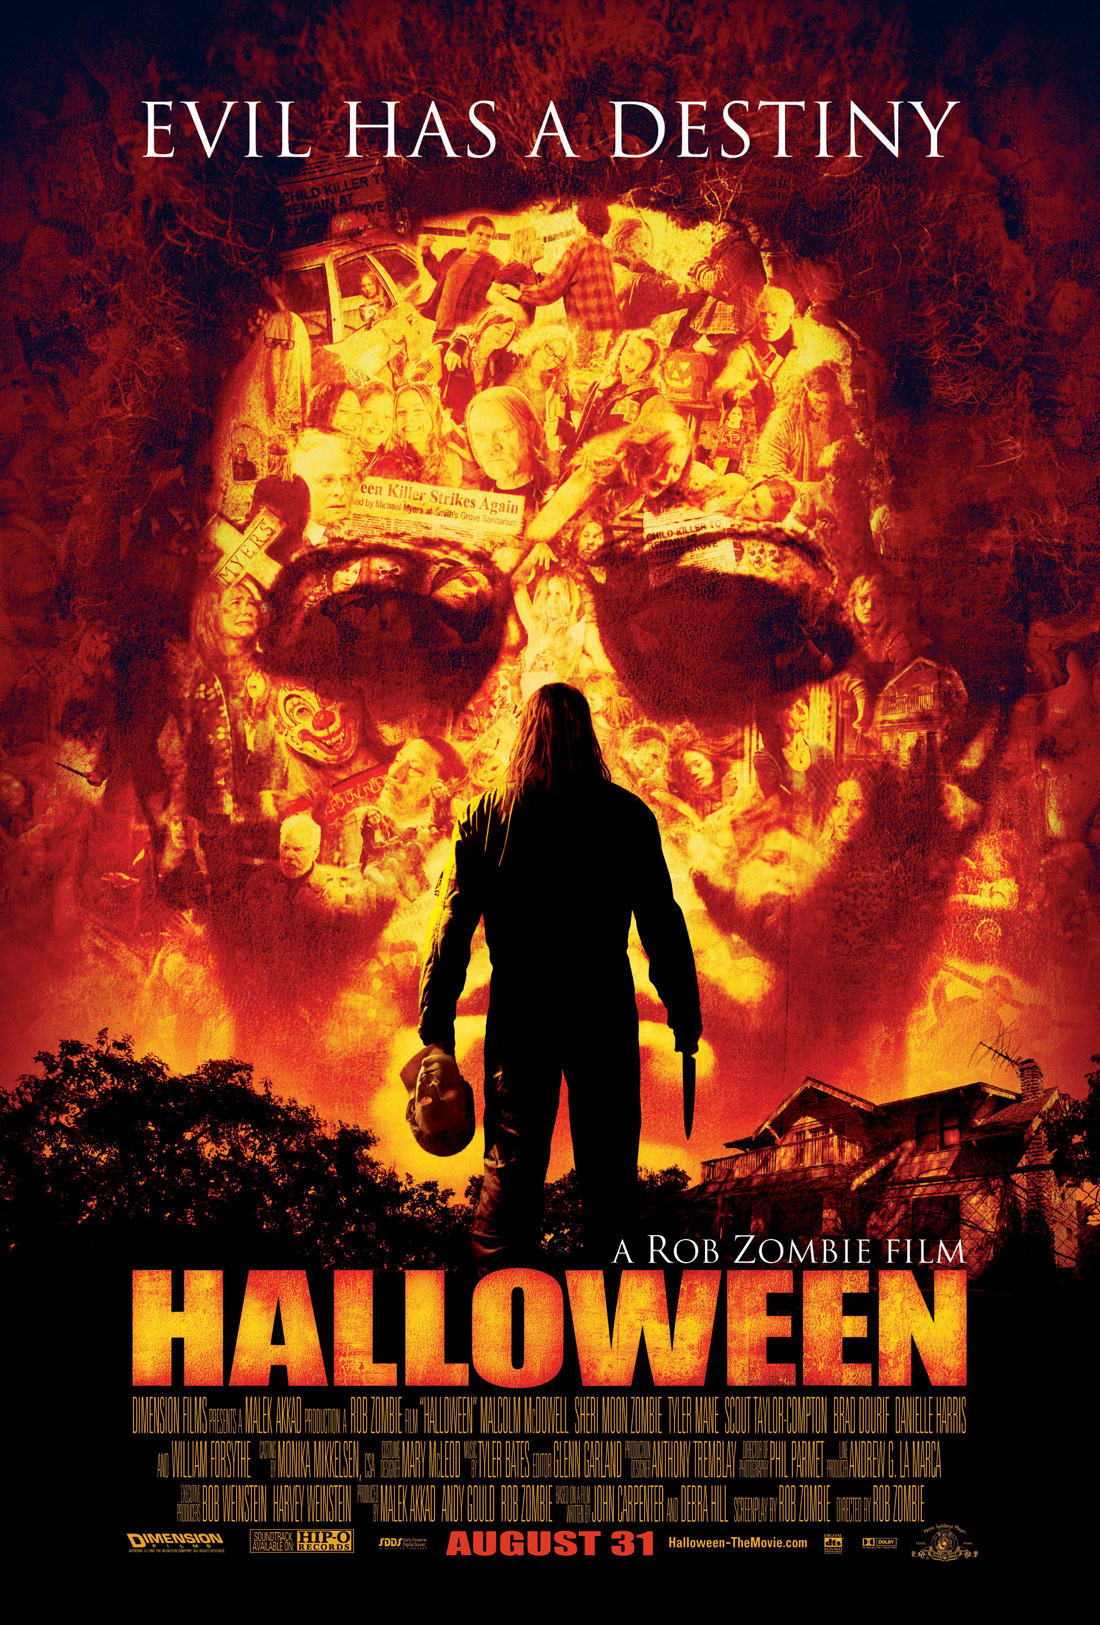 Halloween Returns A Guide To Make One Good Sequel Consequence Of Sound